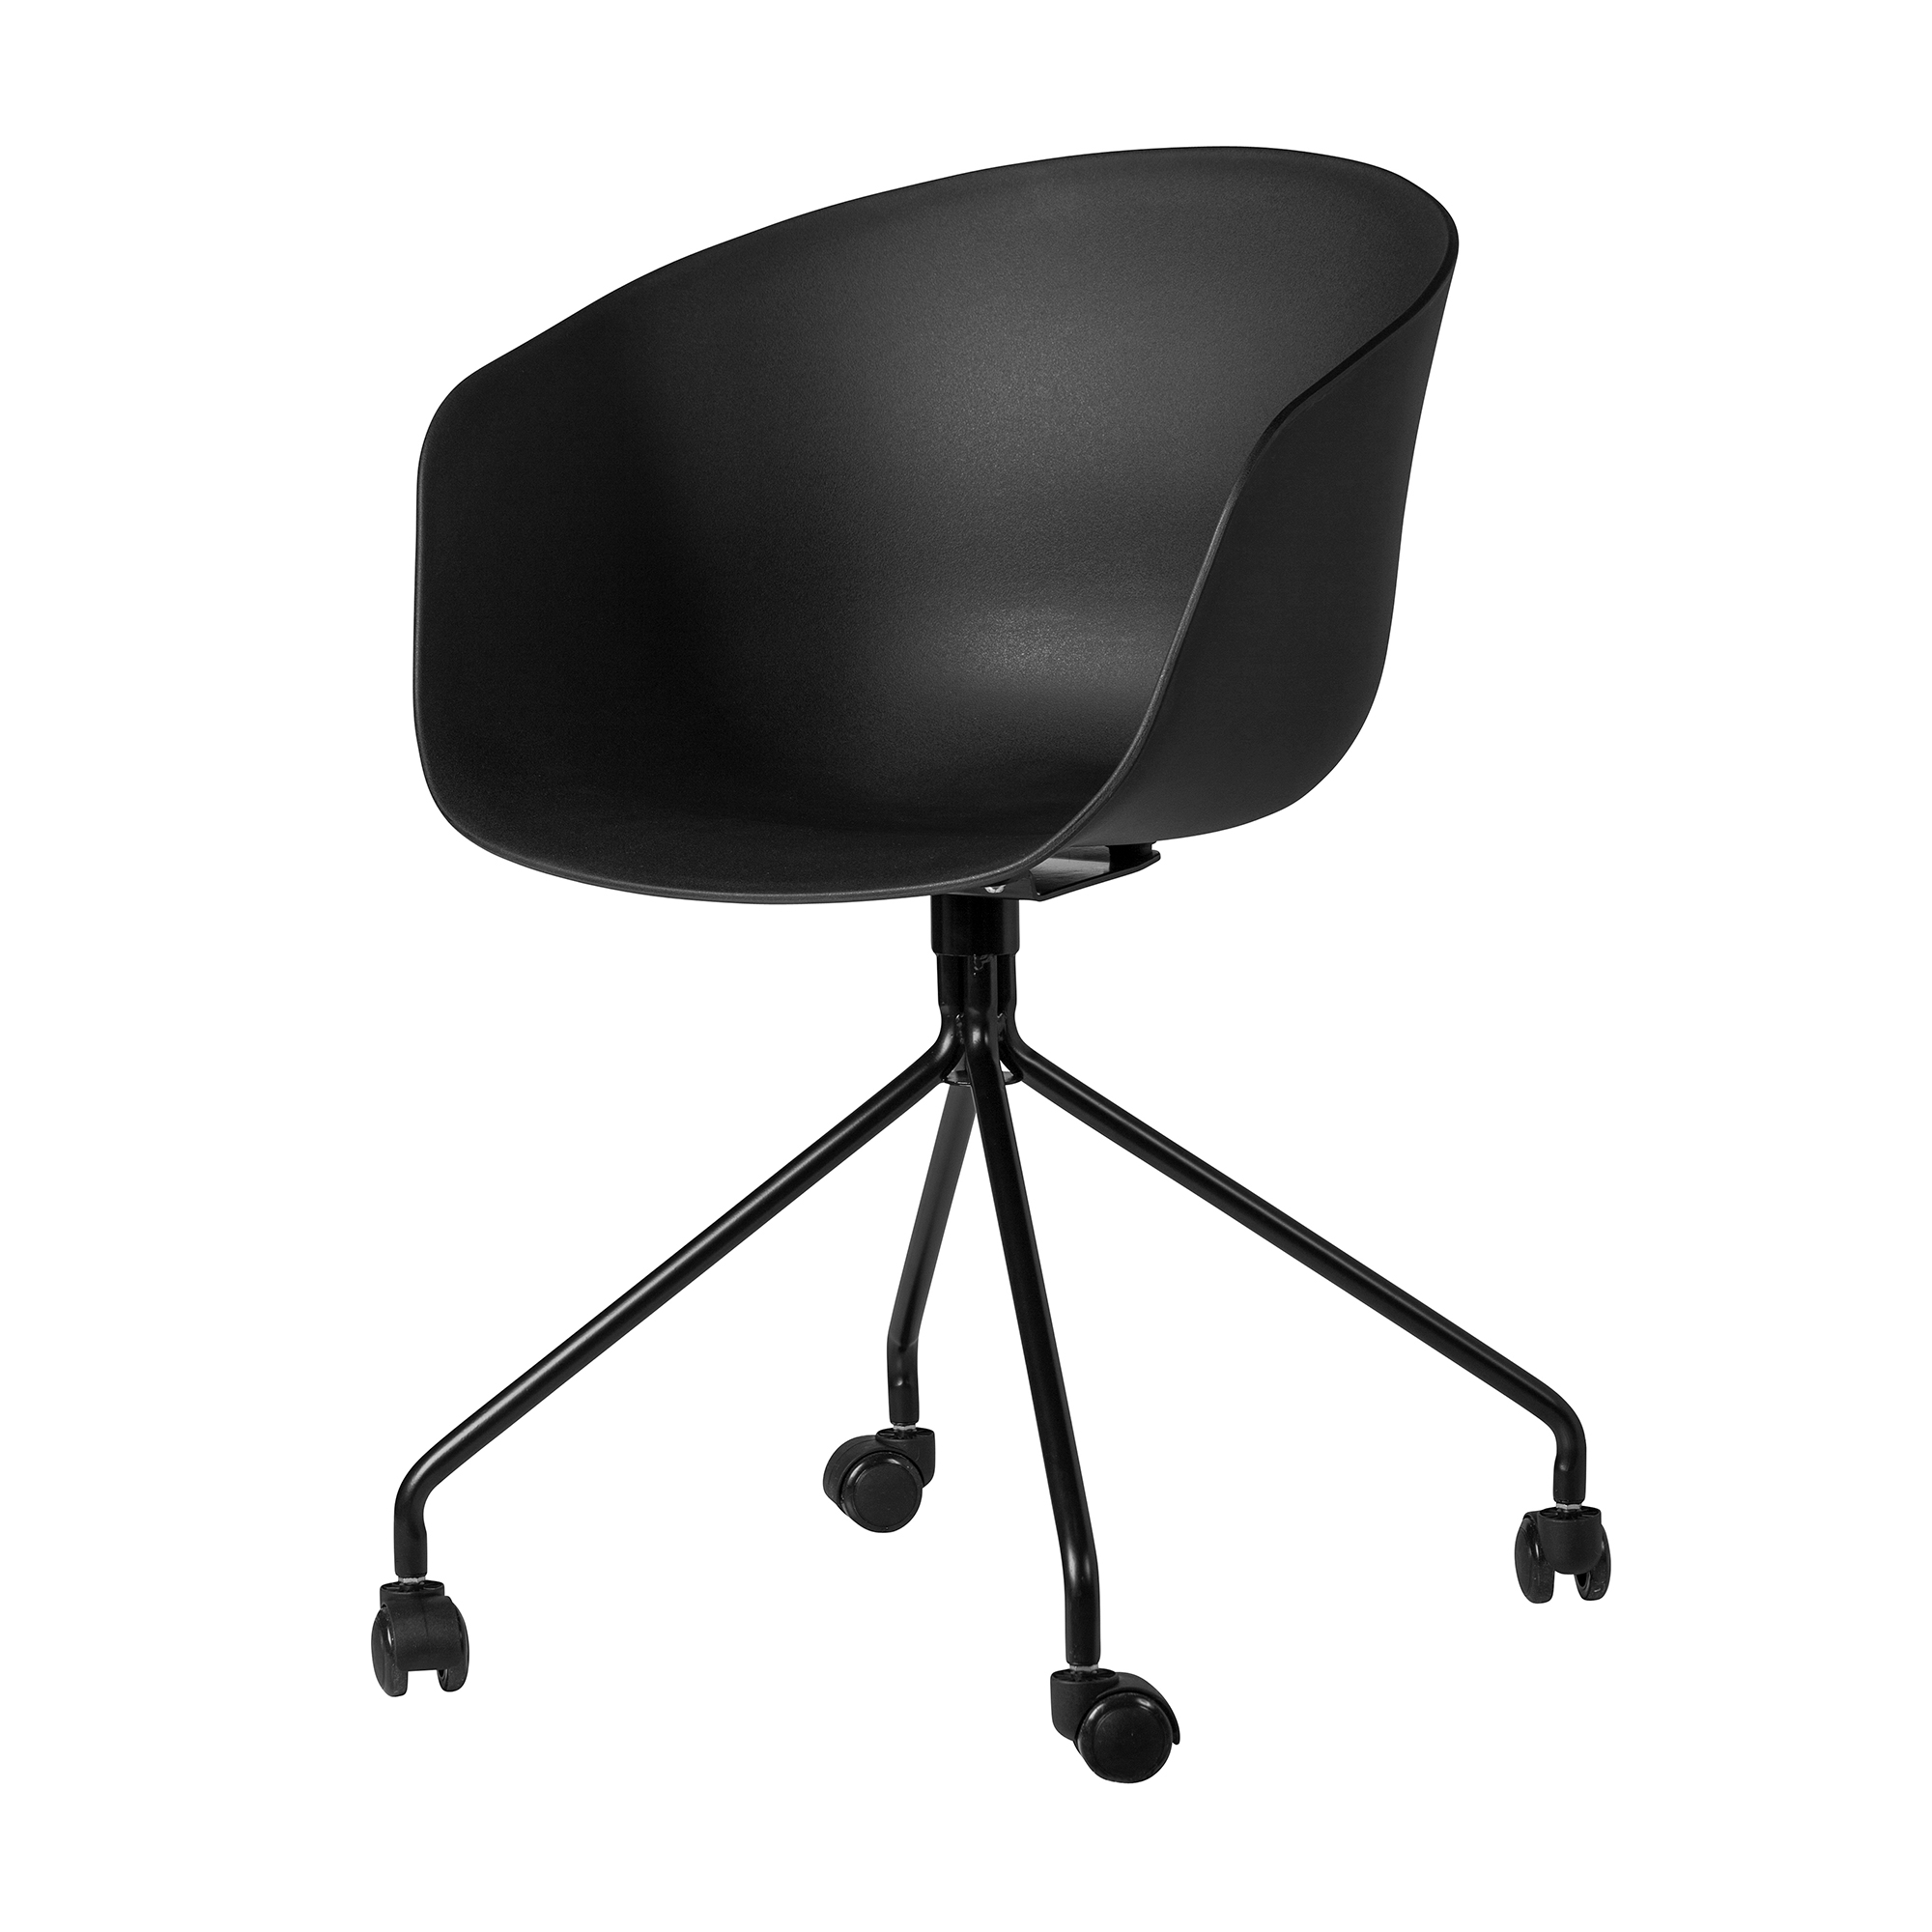 HAY About A Chair Style Office Chair Black The Khazana  : KHA CH8116Z BK 2 from www.thekhazana.net size 2000 x 2000 jpeg 599kB